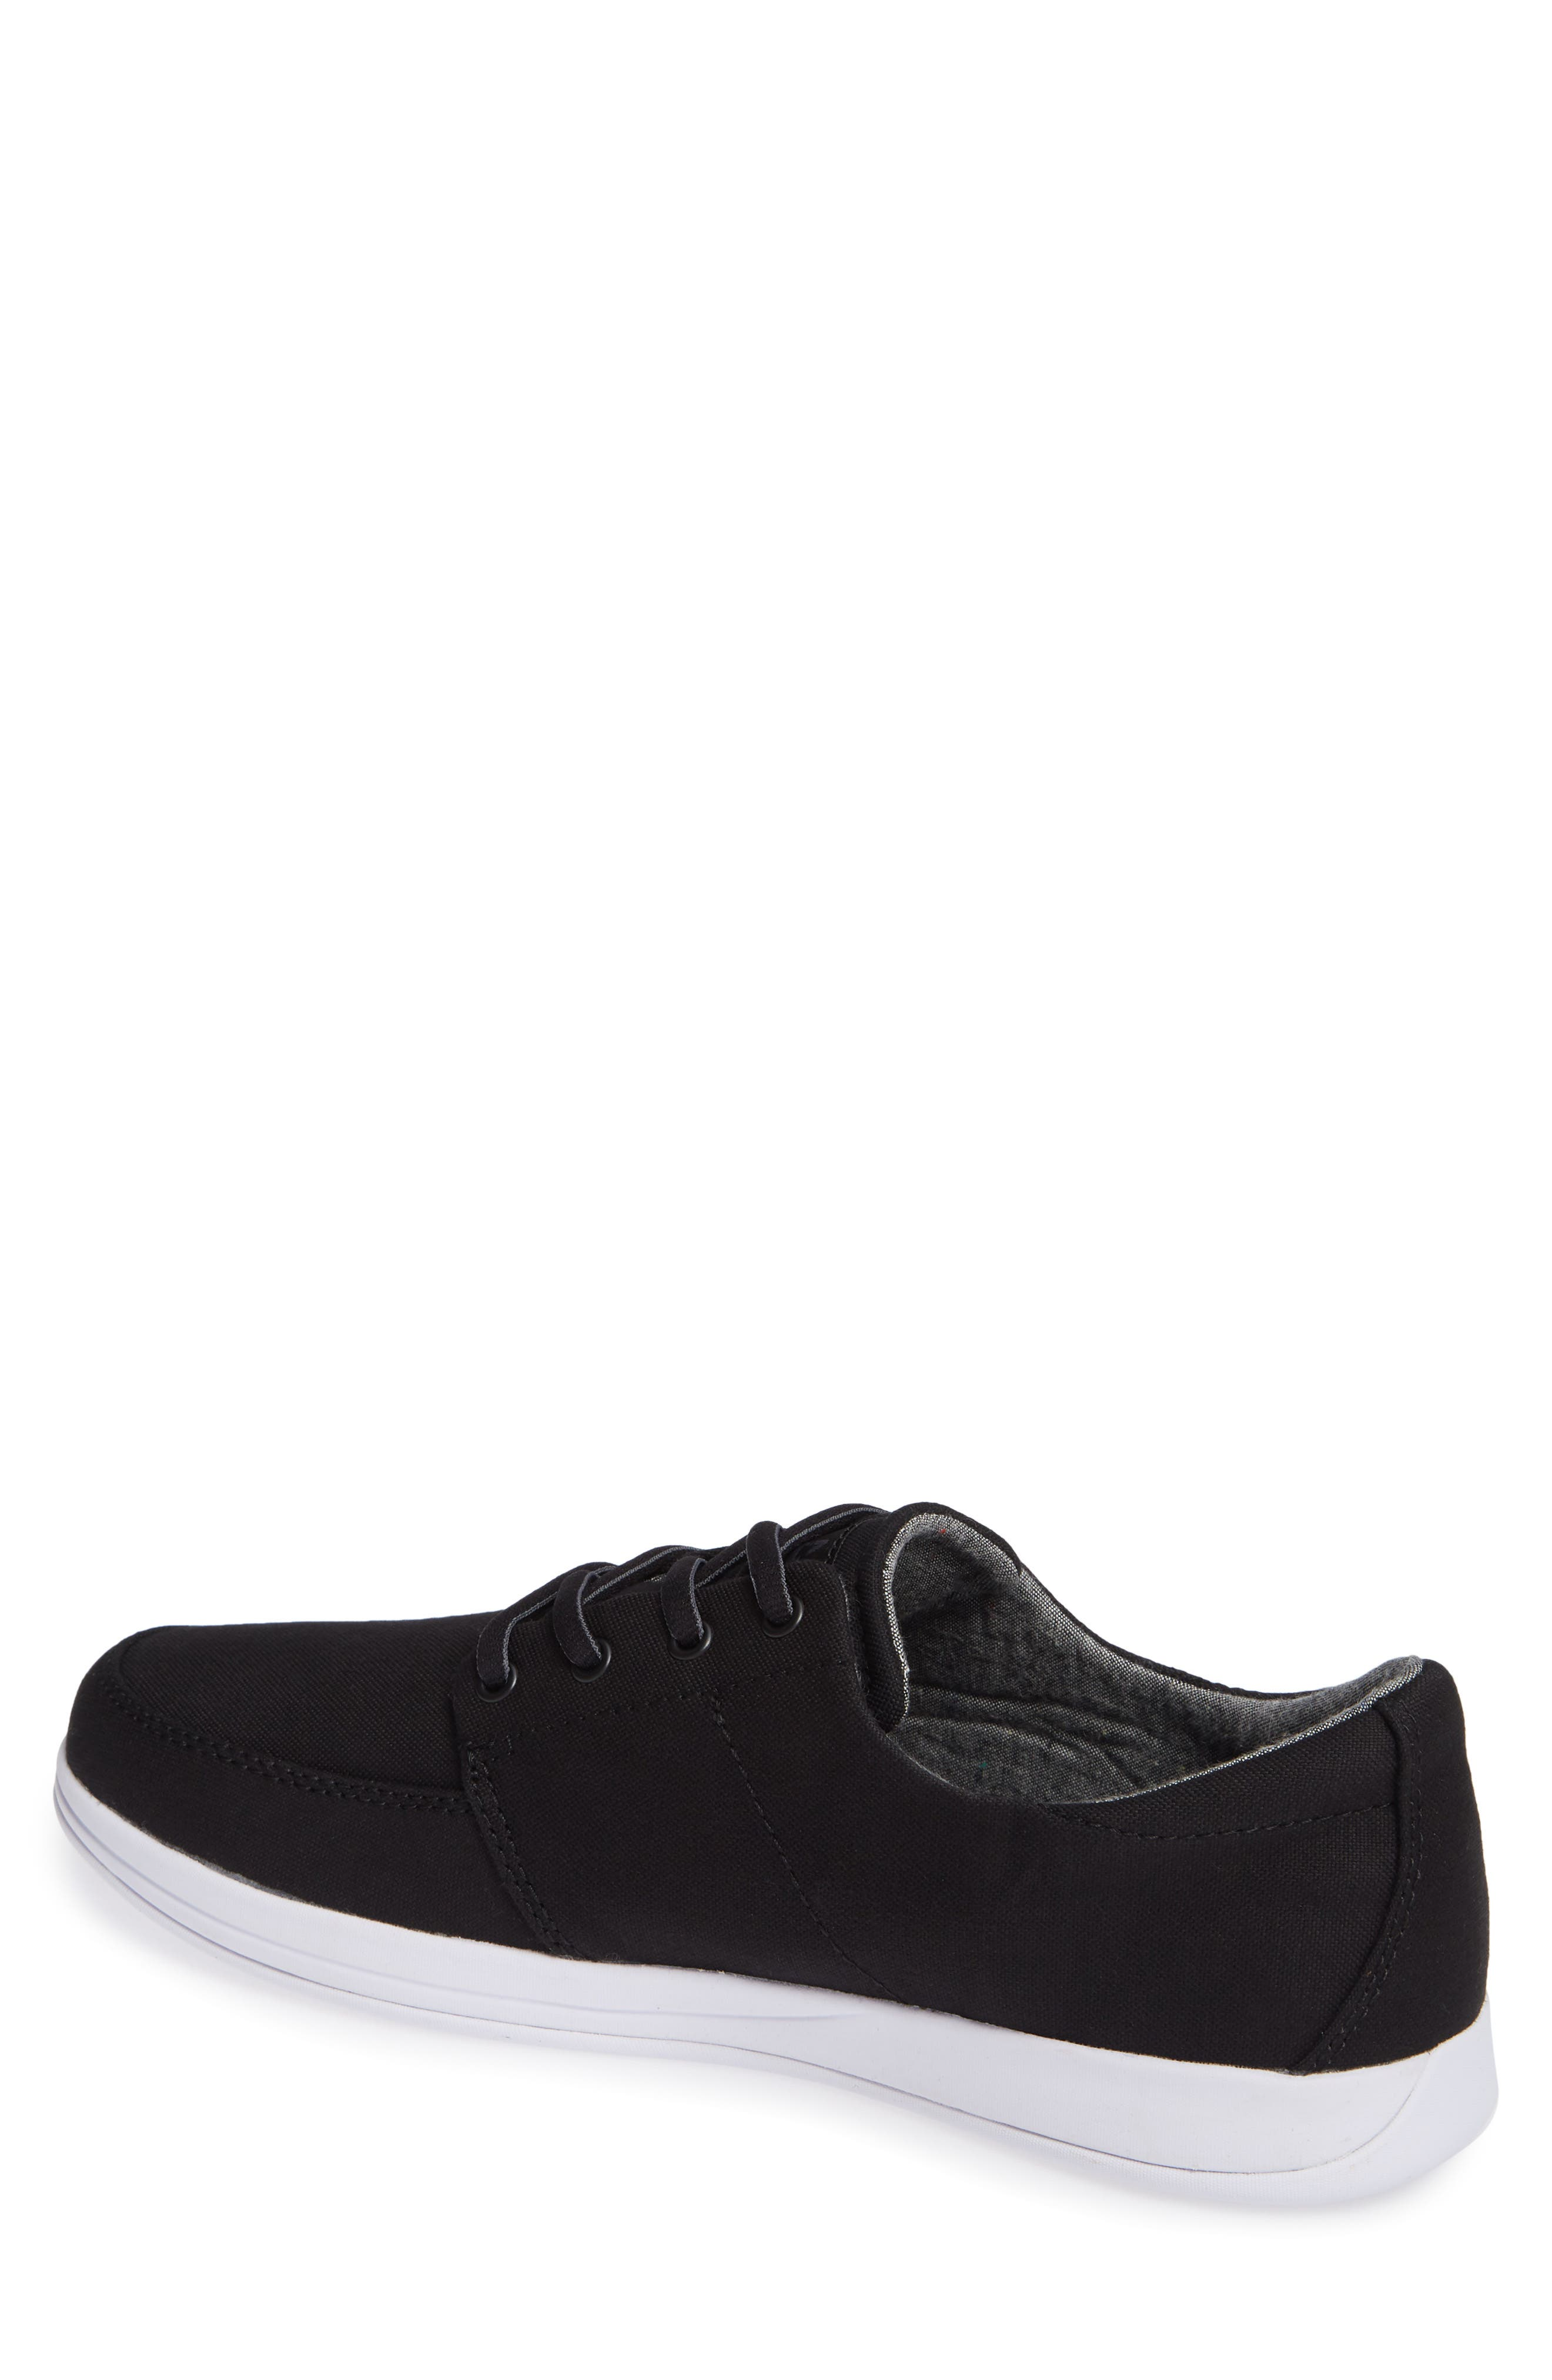 Cuater by Travis Mathew  Quincy Sneaker,                             Alternate thumbnail 2, color,                             BLACK